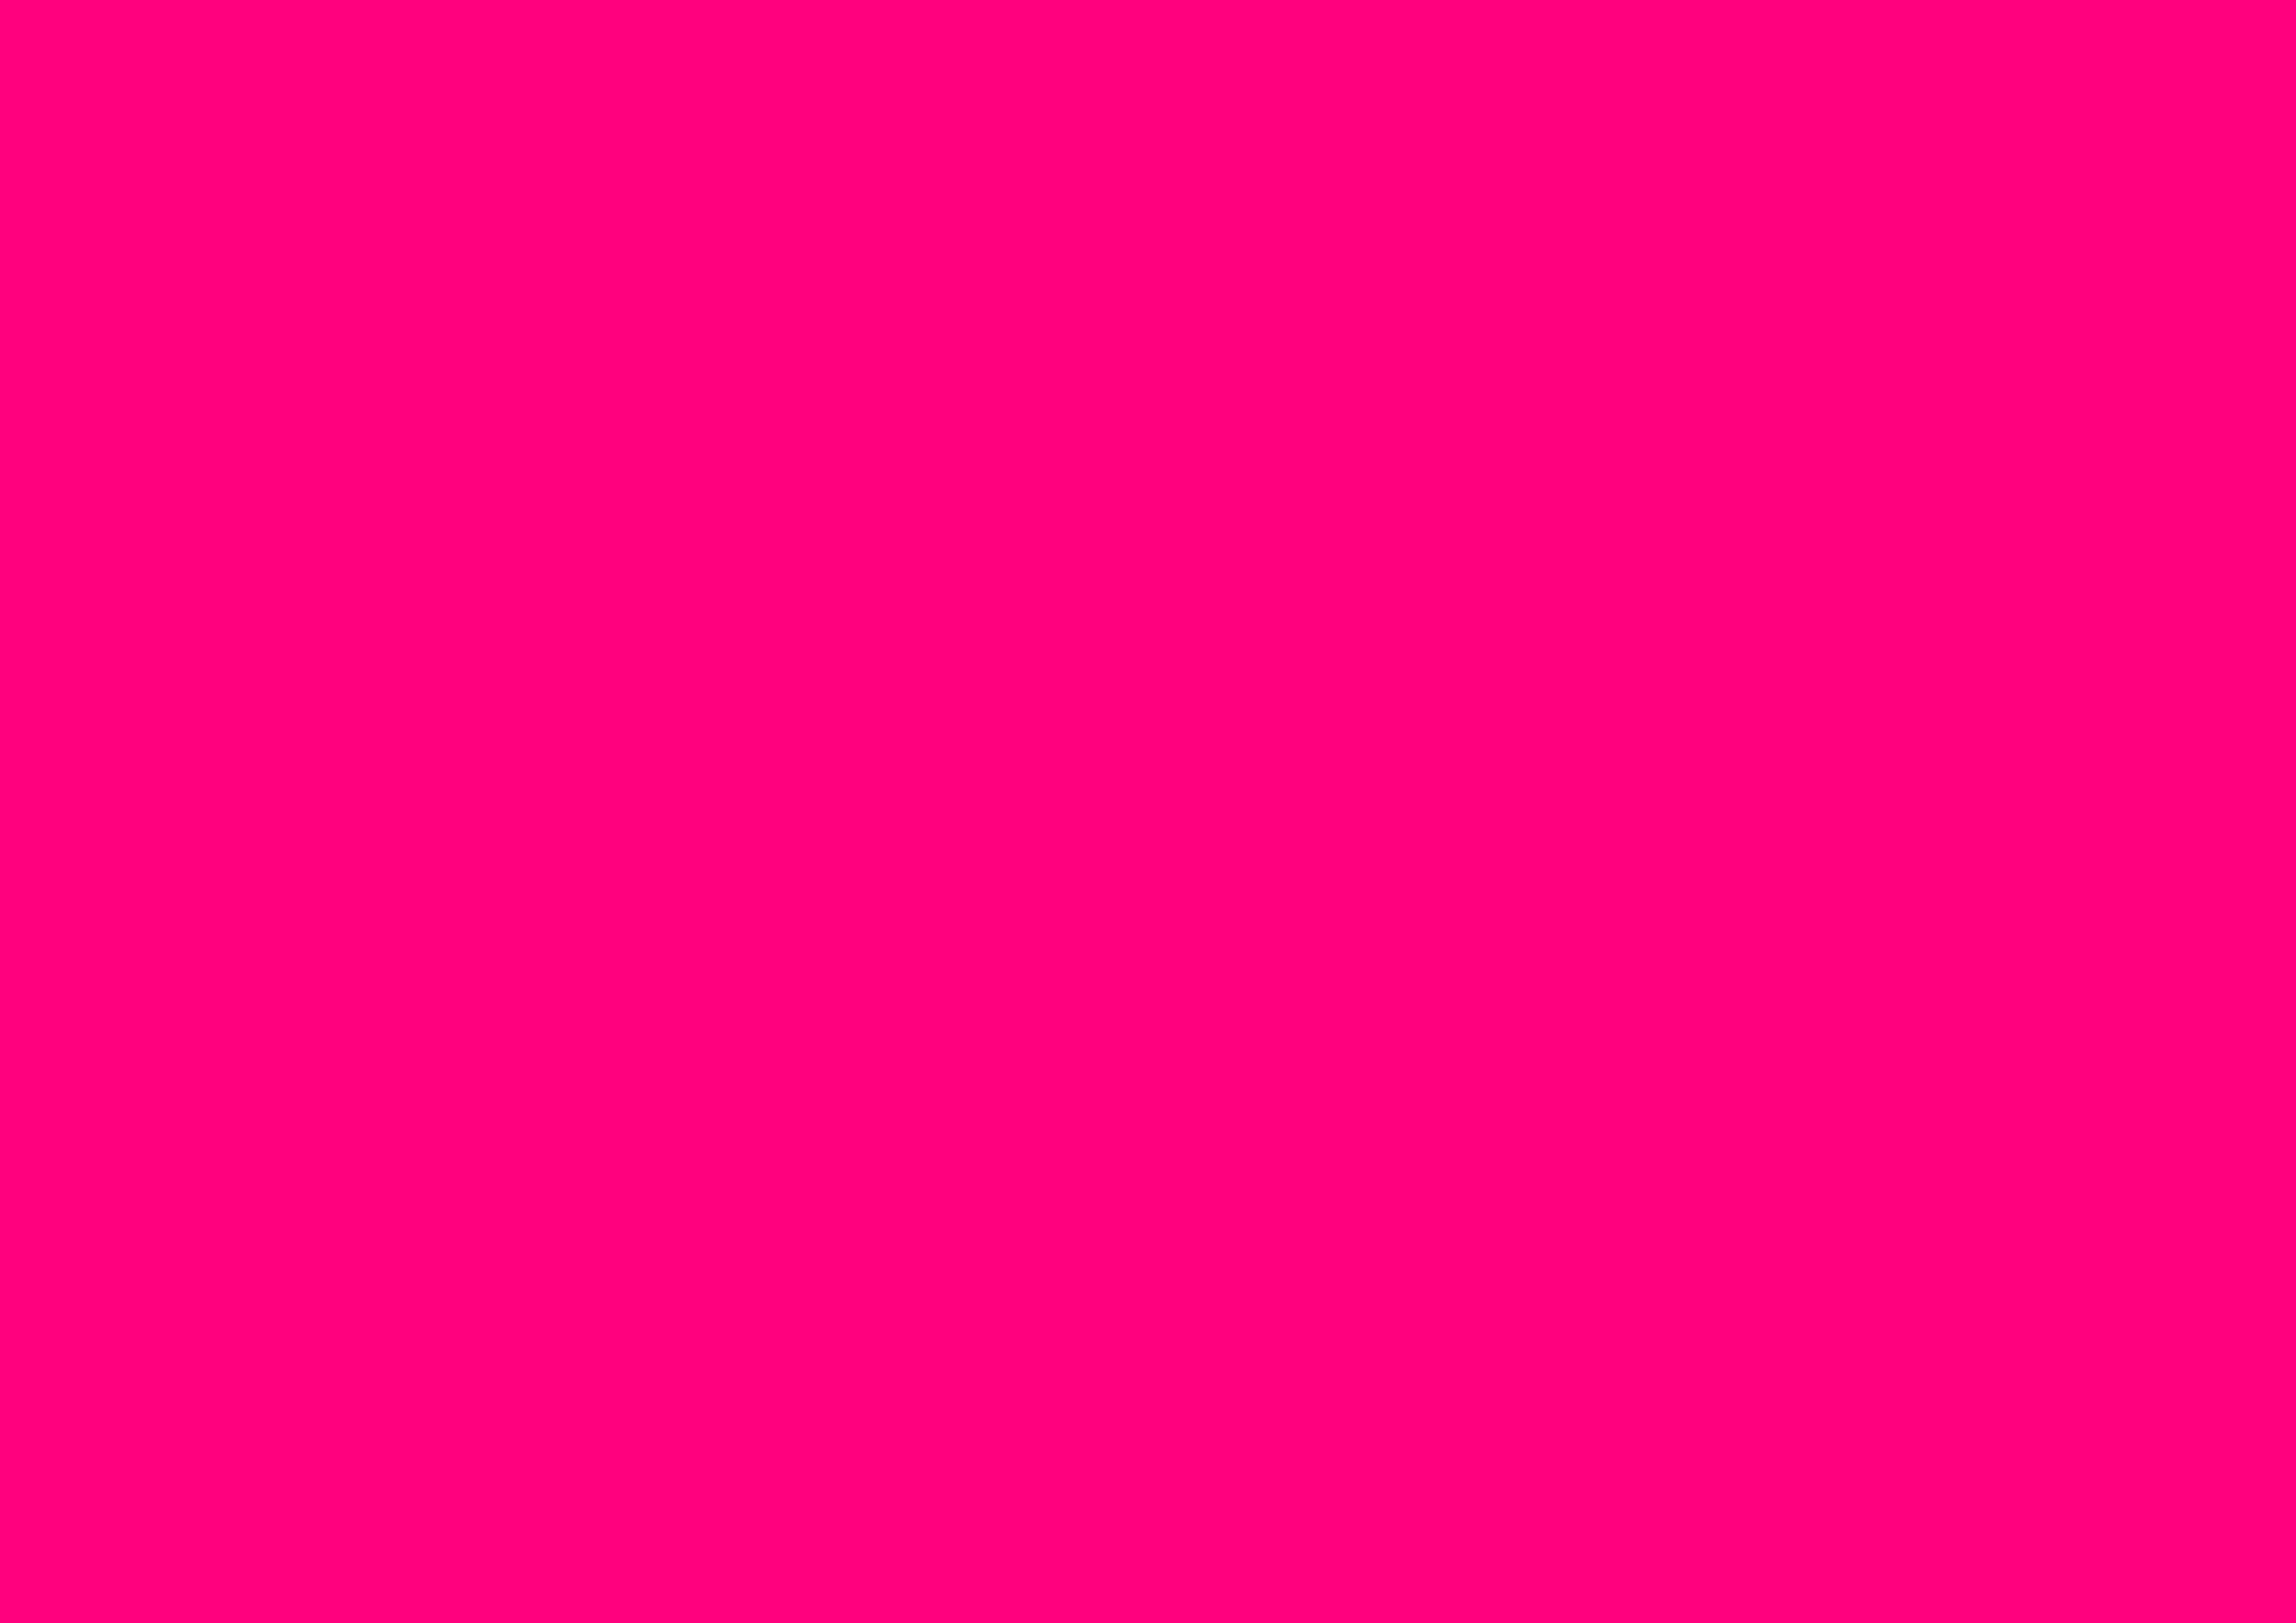 3508x2480 Bright Pink Solid Color Background